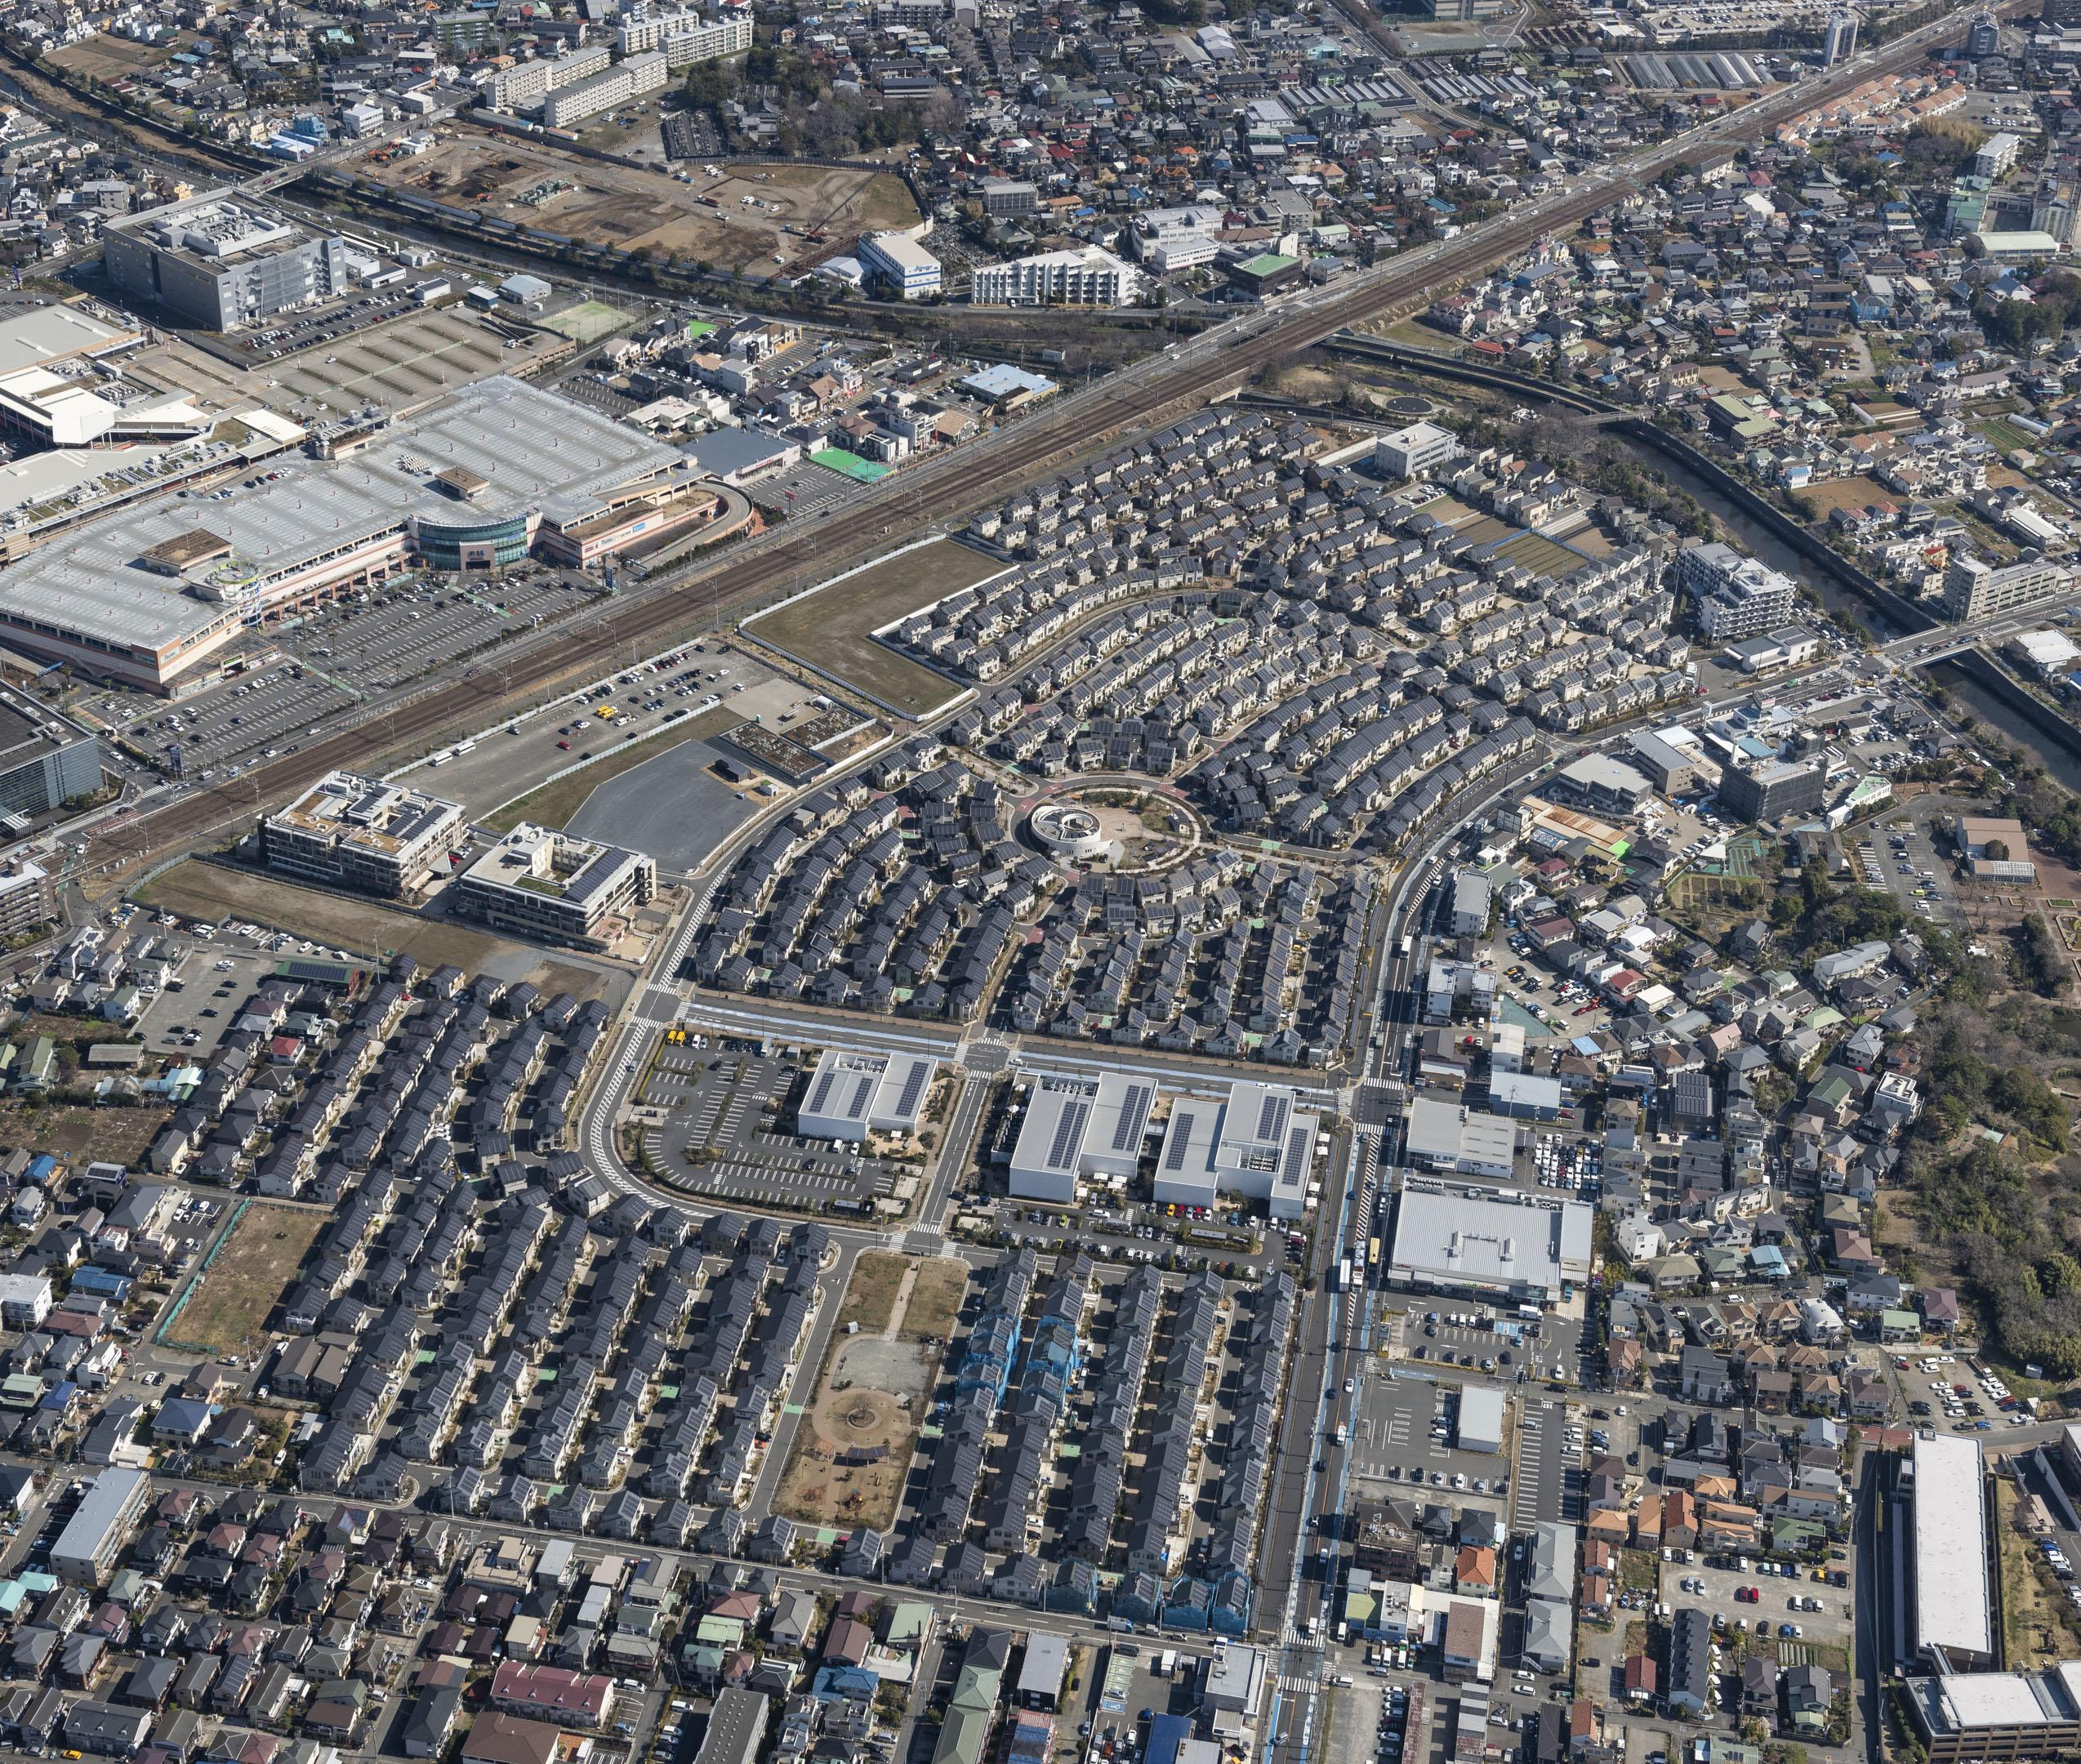 Photo: Aerial view of the FFST